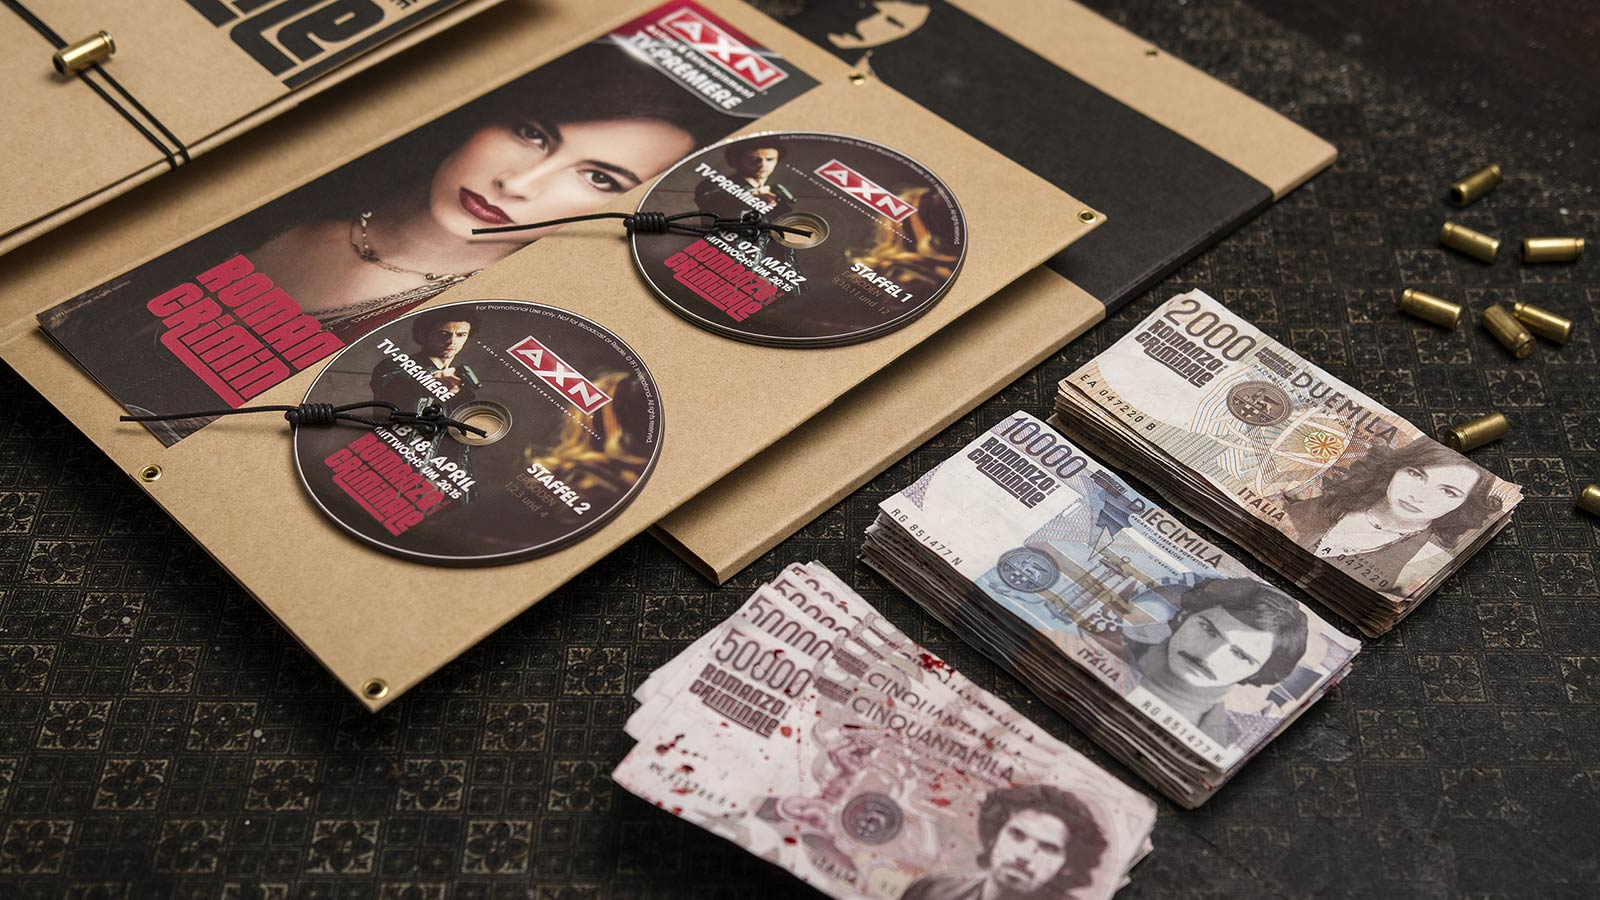 A X N, Romanzo Criminale press kit and counterfeit money, close side view